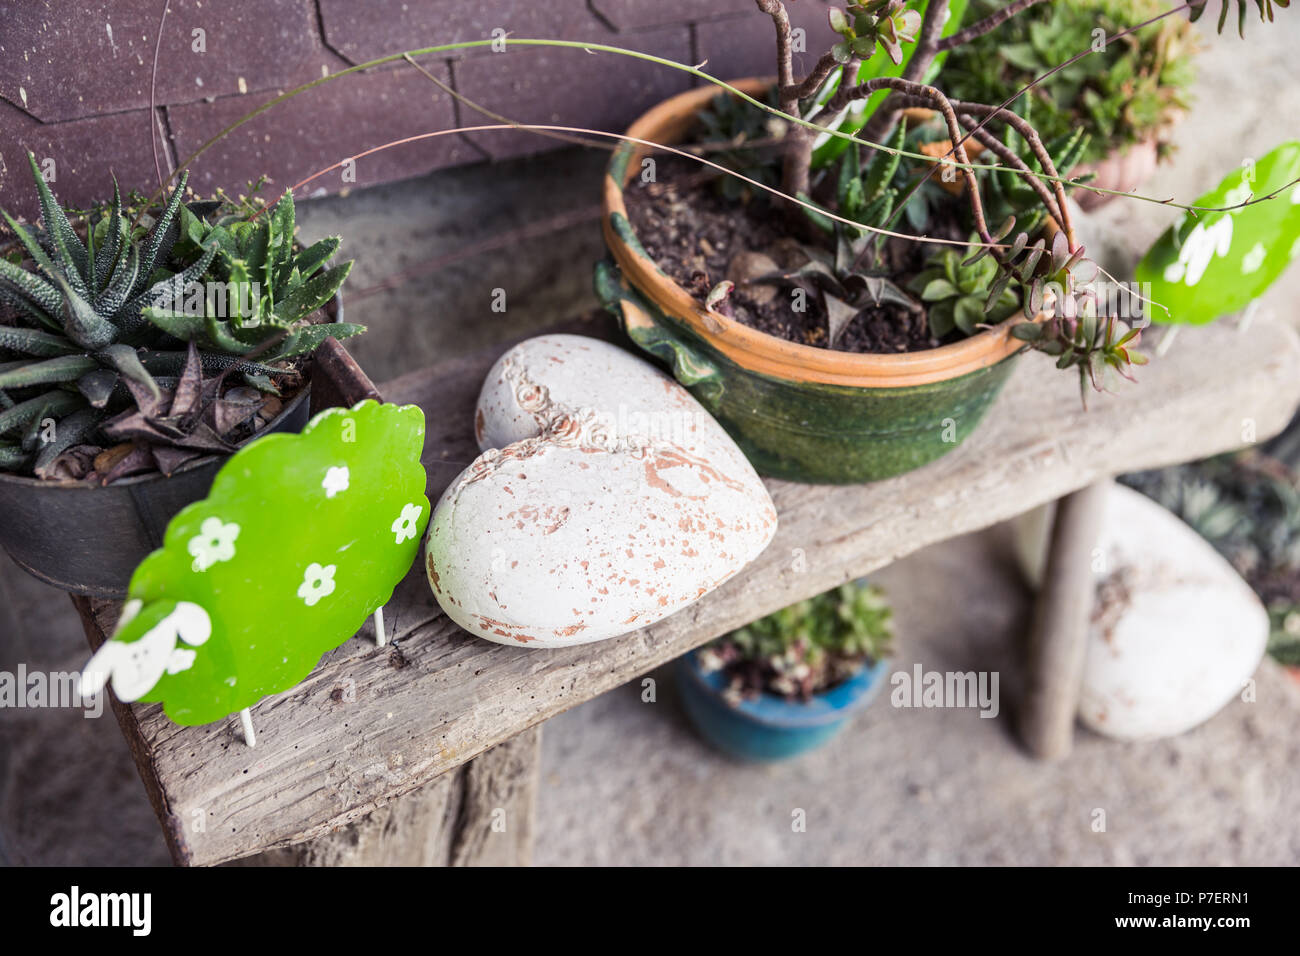 Shabby Chic Garden Decorations on Wooden Bench - Stock Image